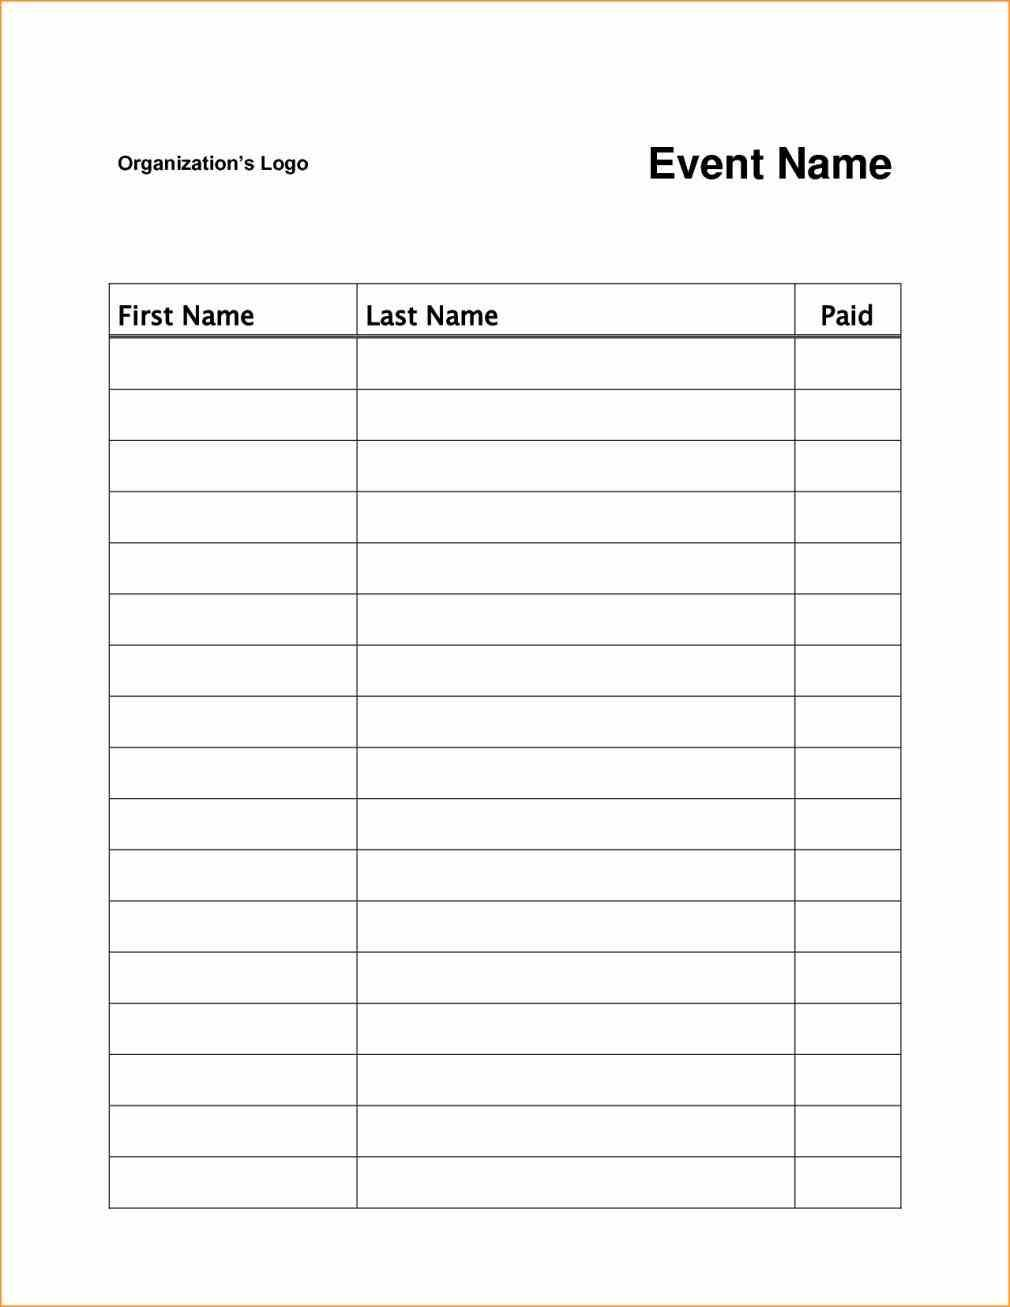 Sign In Sheet Template Word | Event Or Class Workshop Forms A Sign Up Sheet Template Word Simple